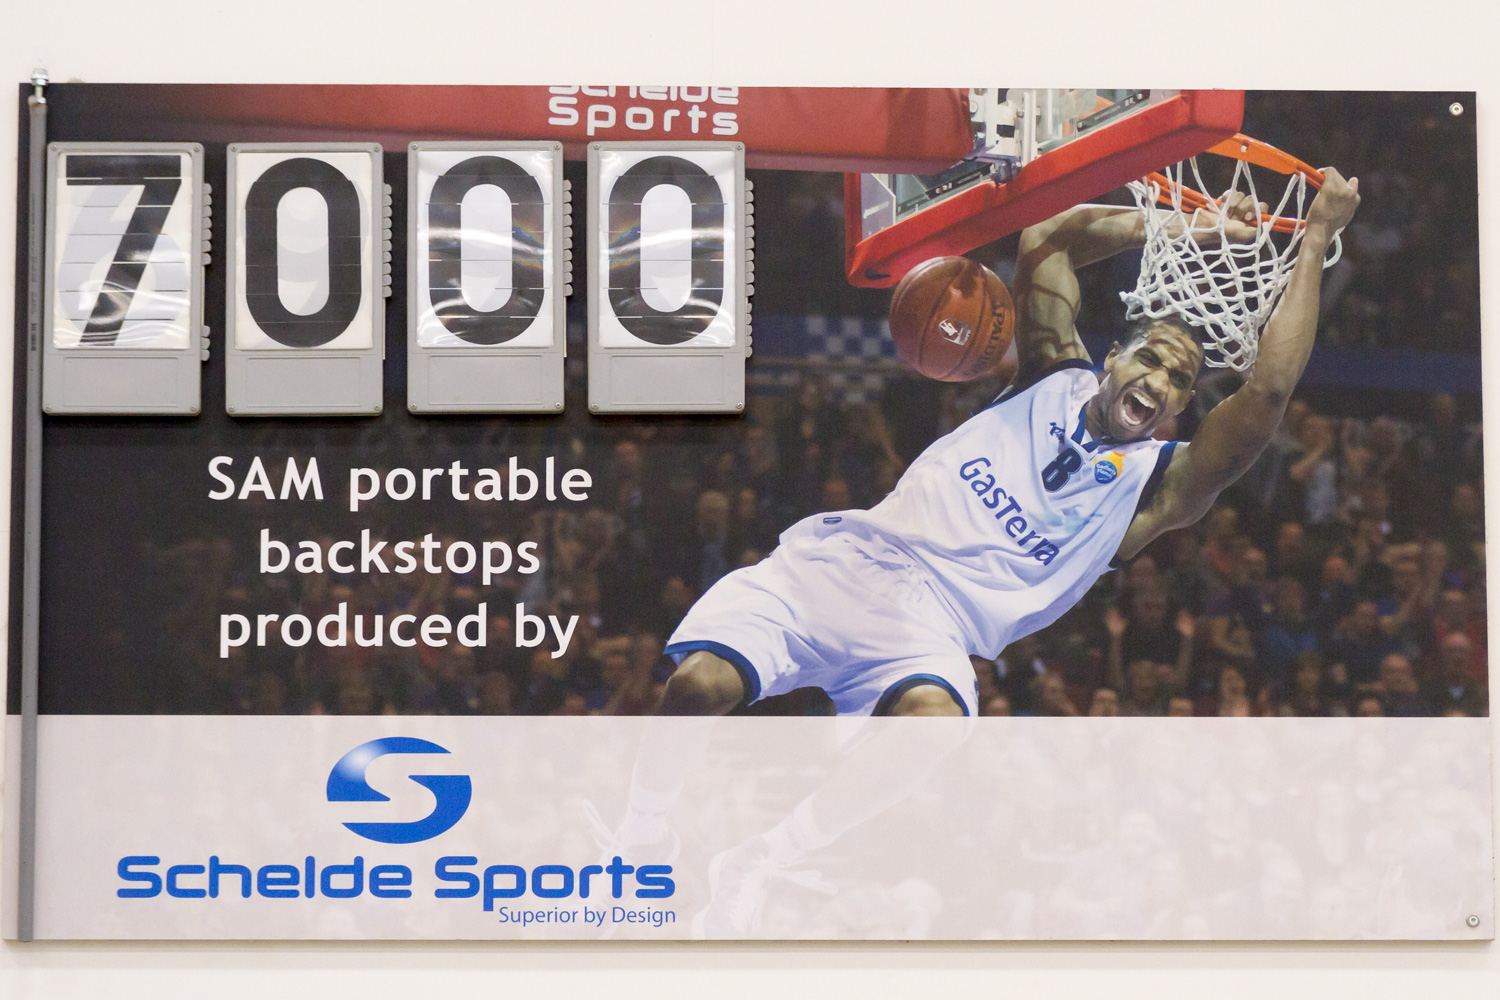 7000th basketball backstop Schelde Sports